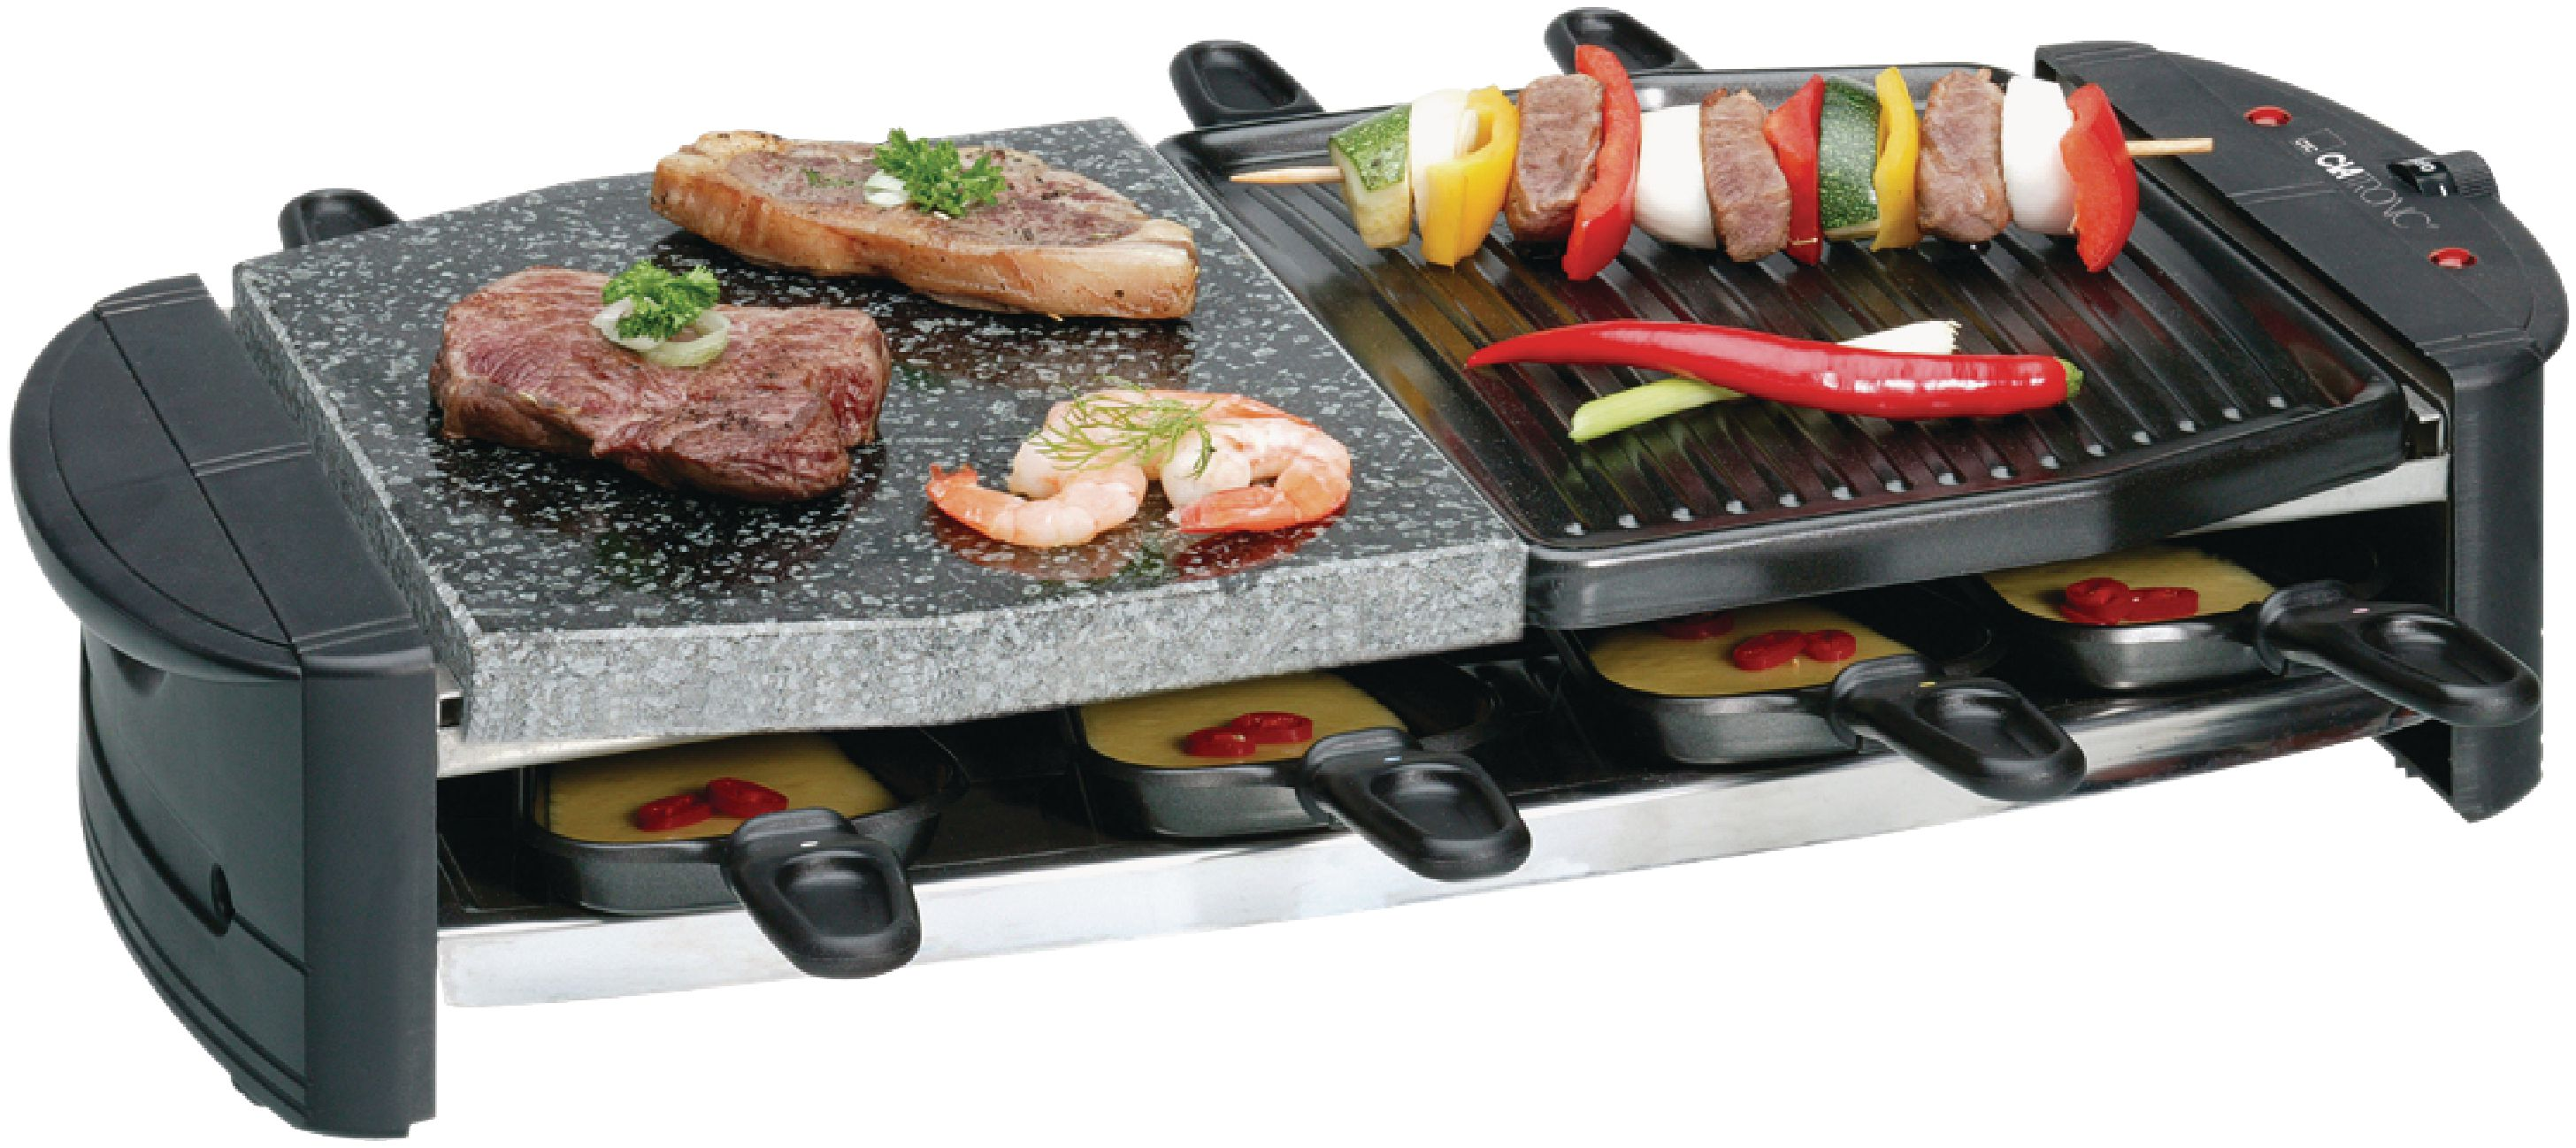 Ha Grill 16 Clatronic Raclette Grill Rg2892